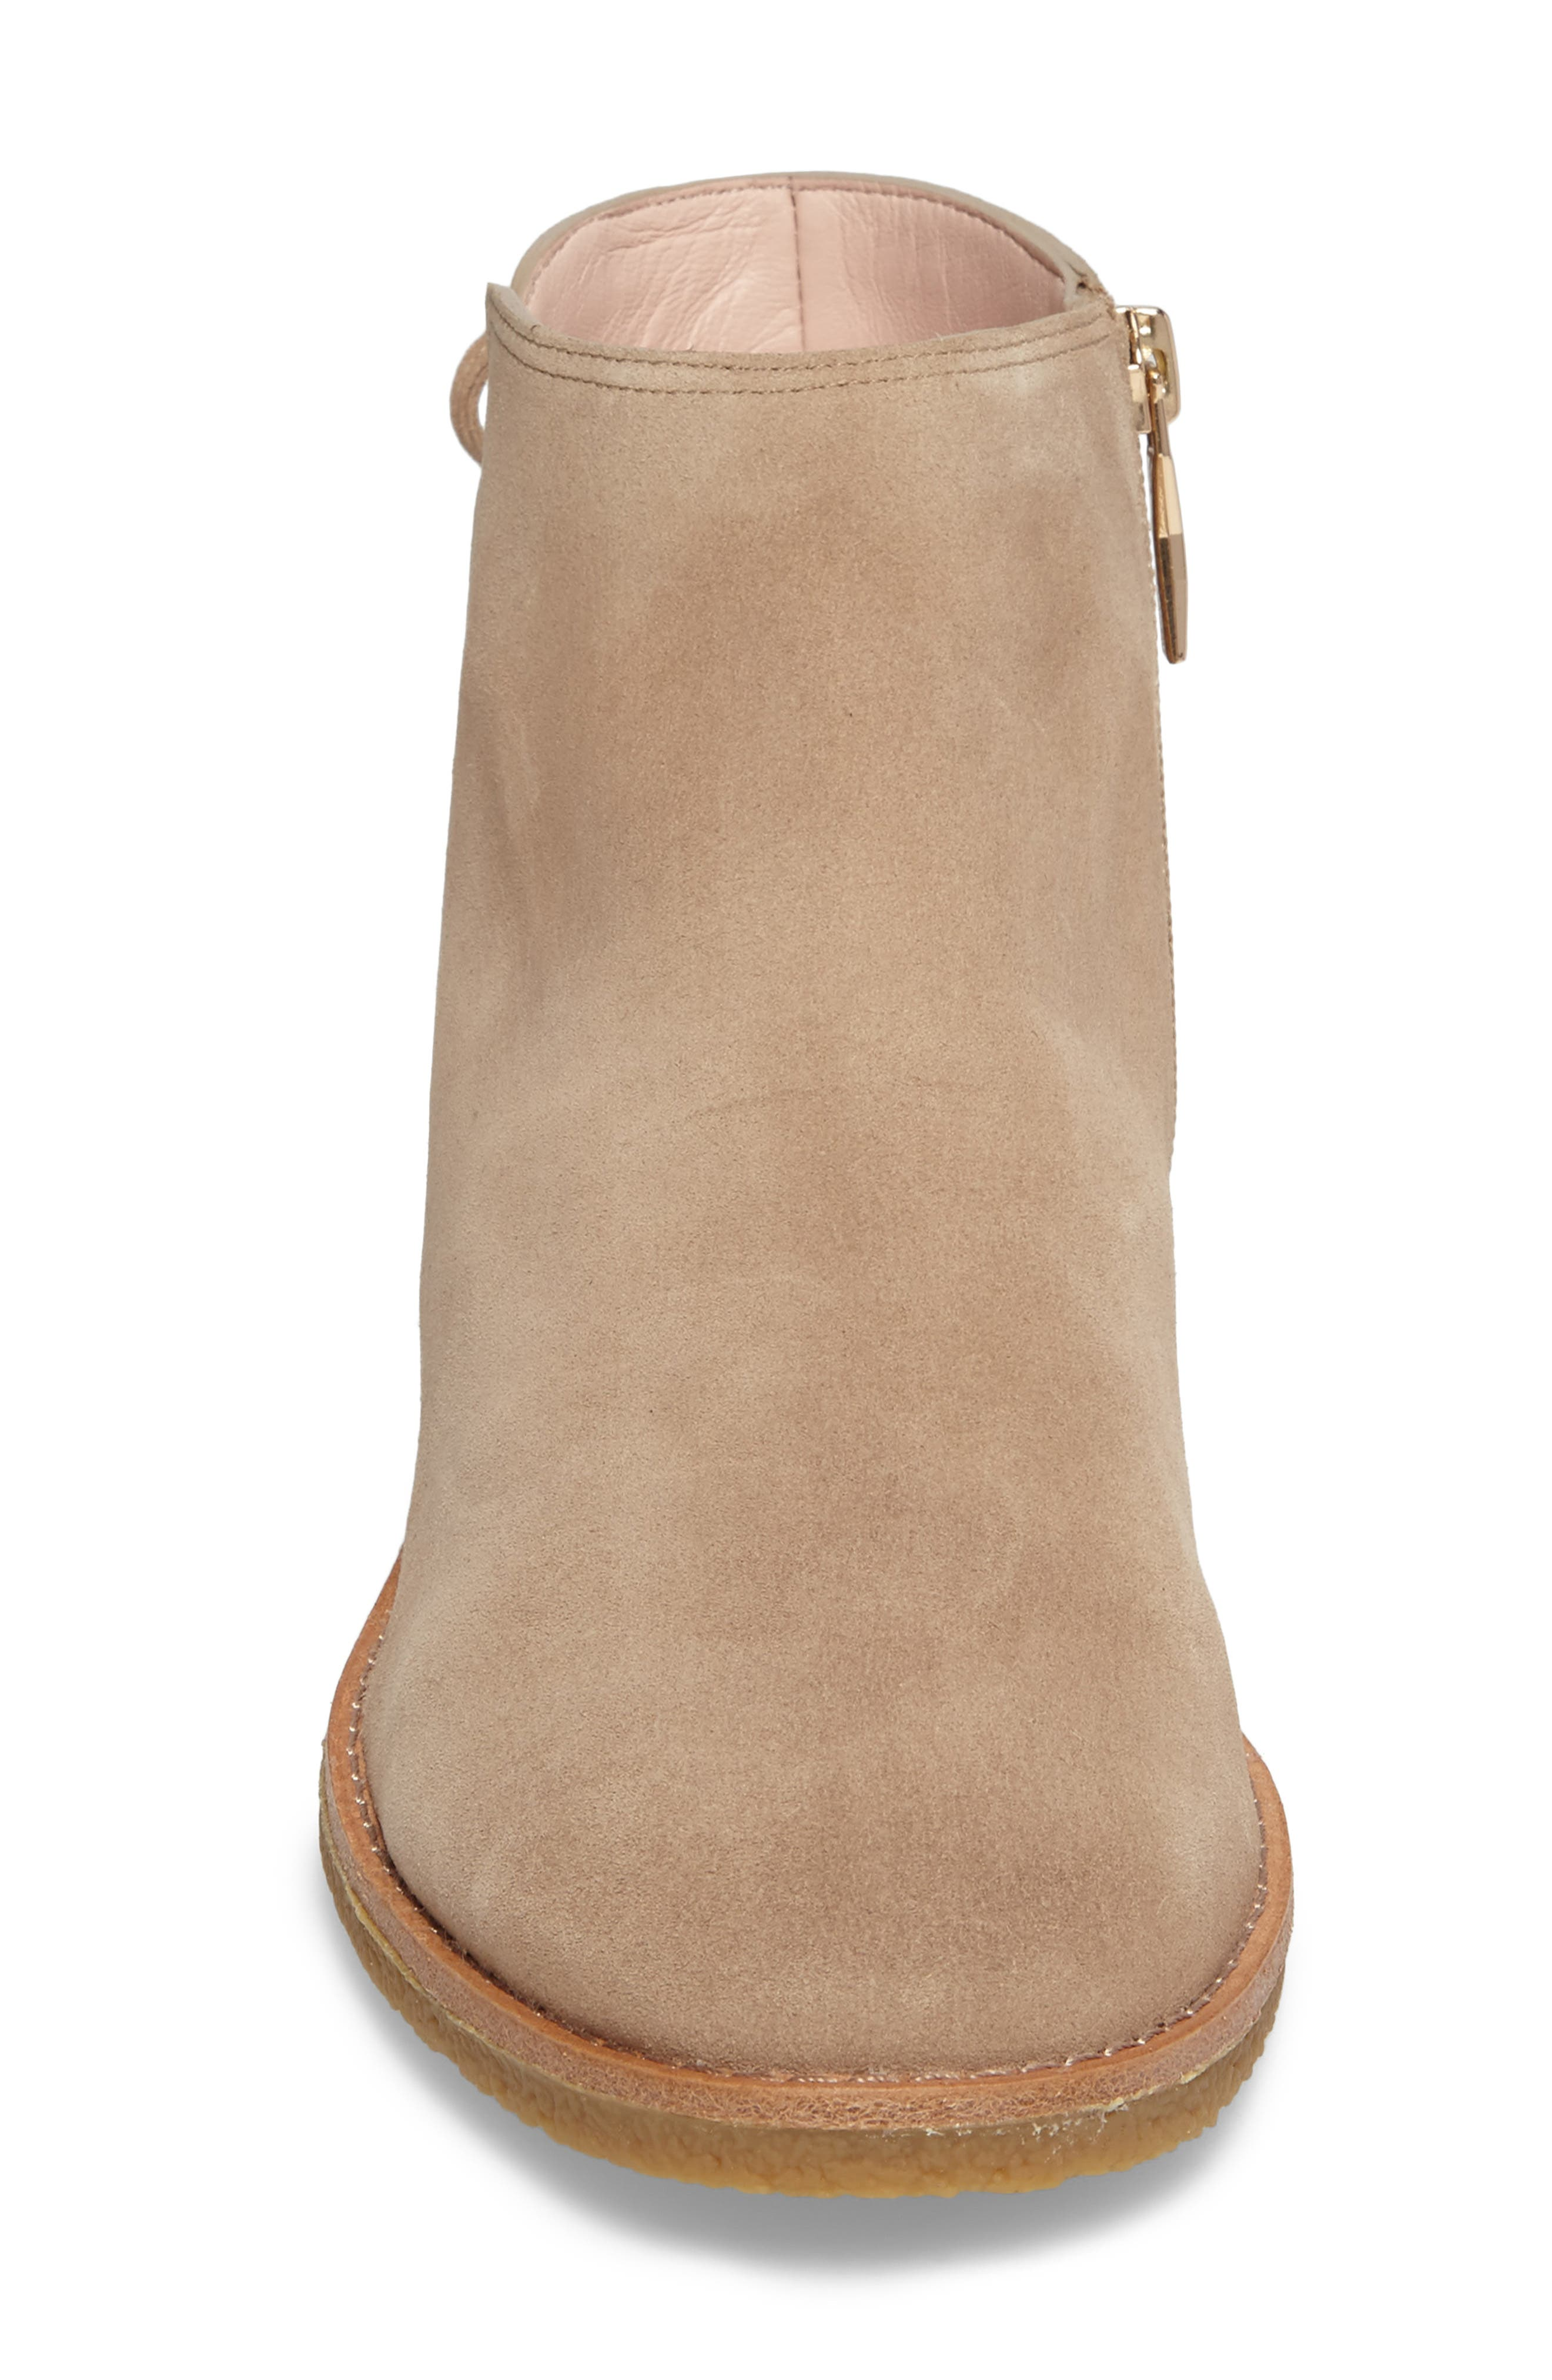 belleville bootie,                             Alternate thumbnail 4, color,                             Desert Suede